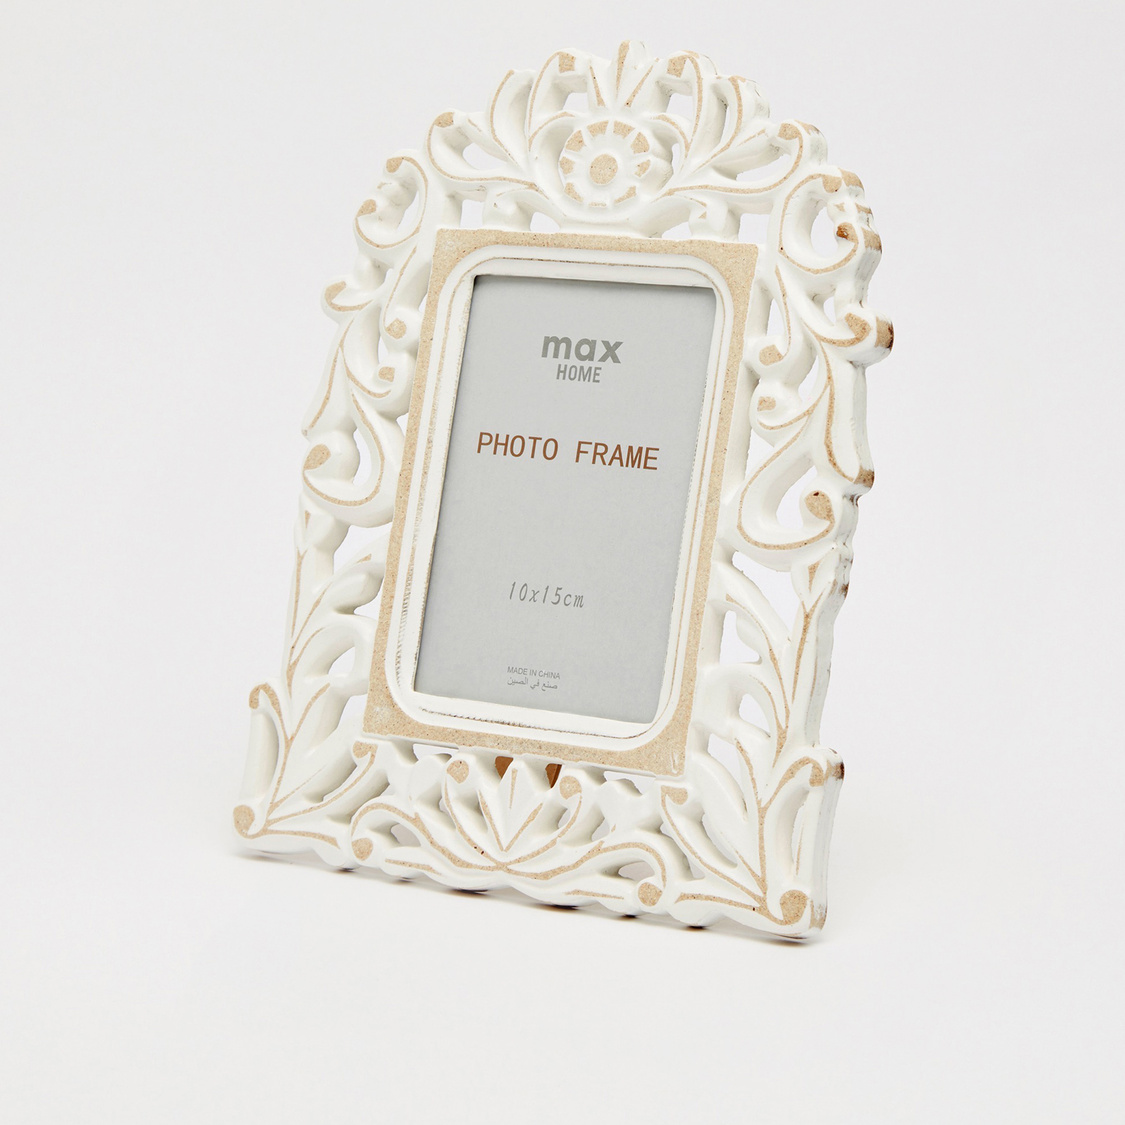 Rectangular Photo Frame - 15x10 cms